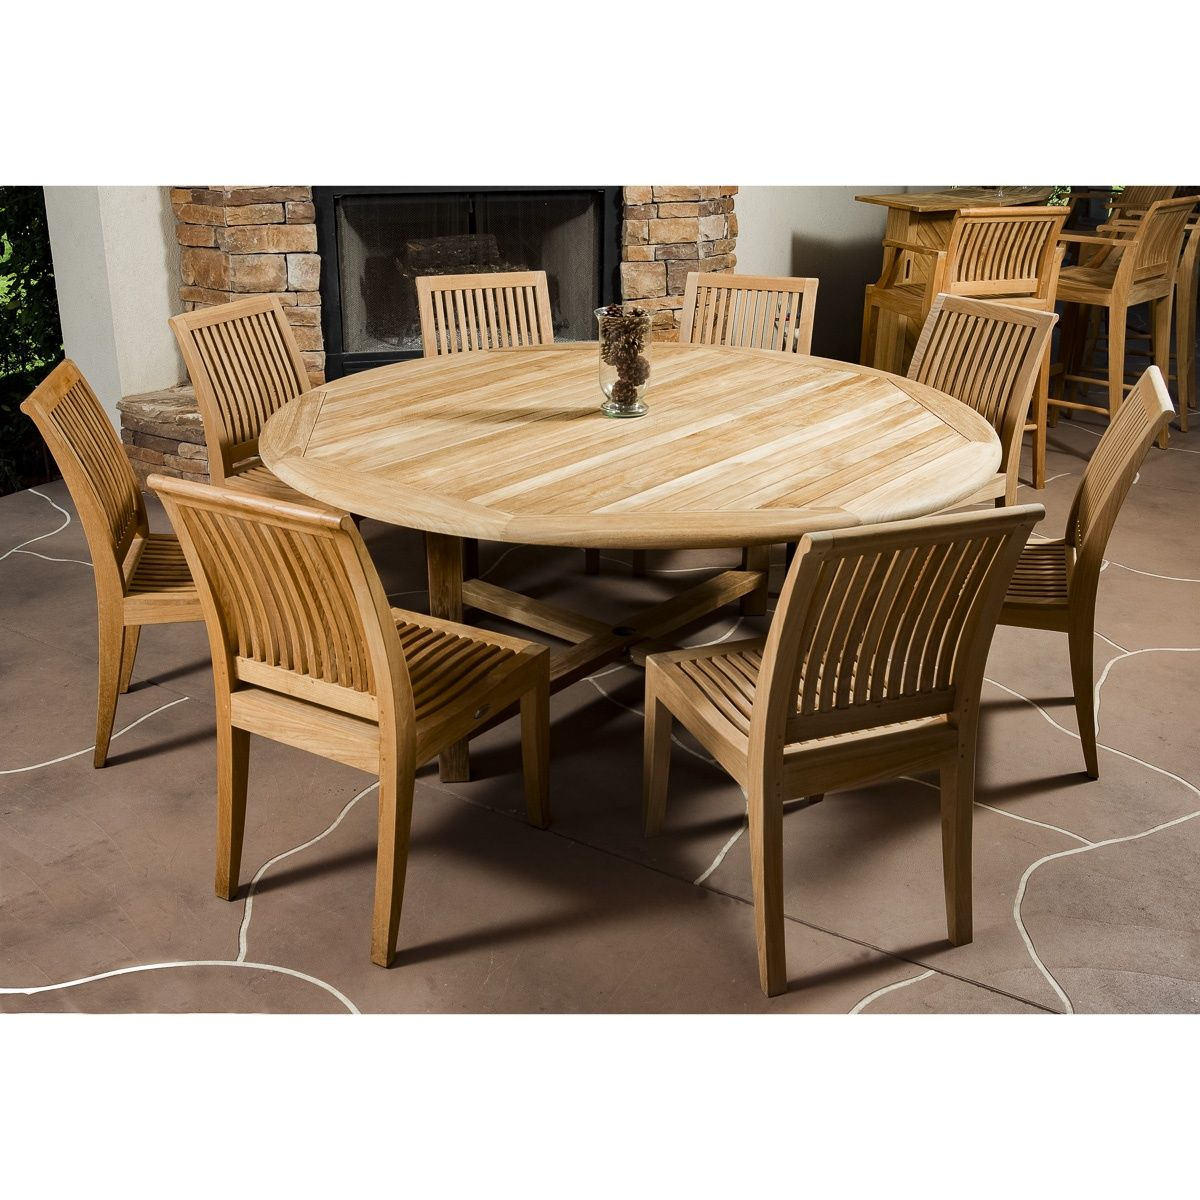 9pc Teak Round Table Dining Set Westminster Teak Luxury Outdoor Furniture Teak Outdoor Furniture Discount Outdoor Furniture